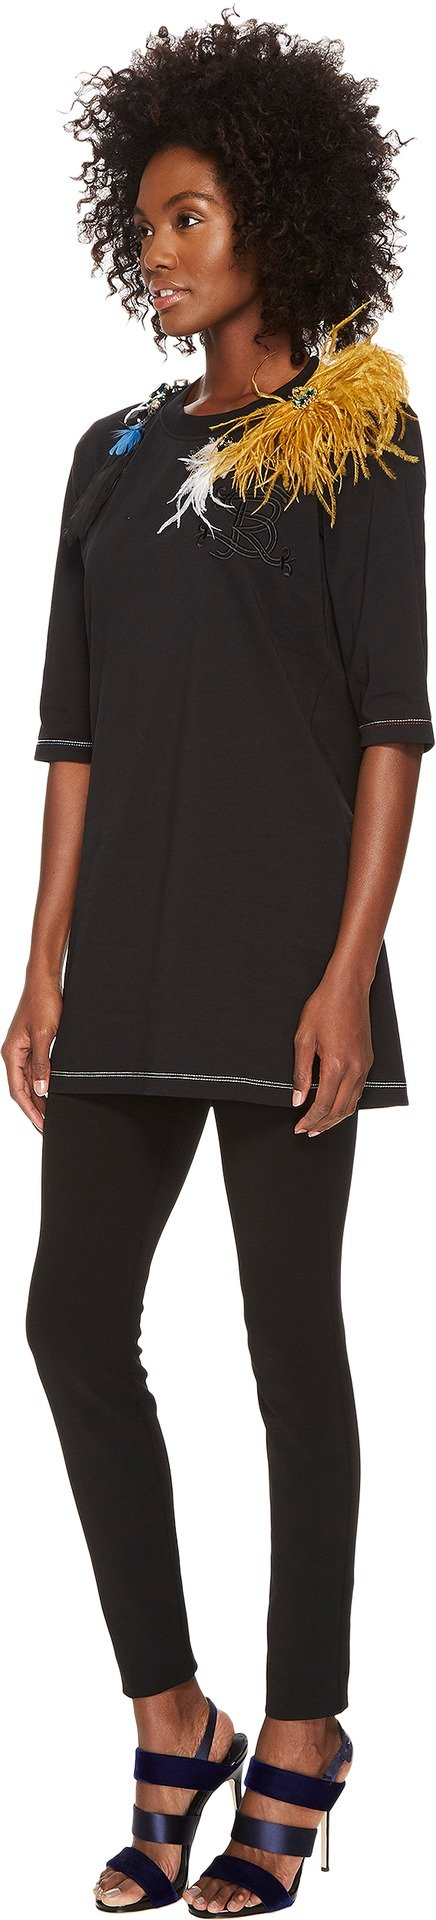 Sonia Rykiel Women's Runway Embroidered Cotton Jersey w/ Feathers Tee Black Large by Sonia Rykiel (Image #2)